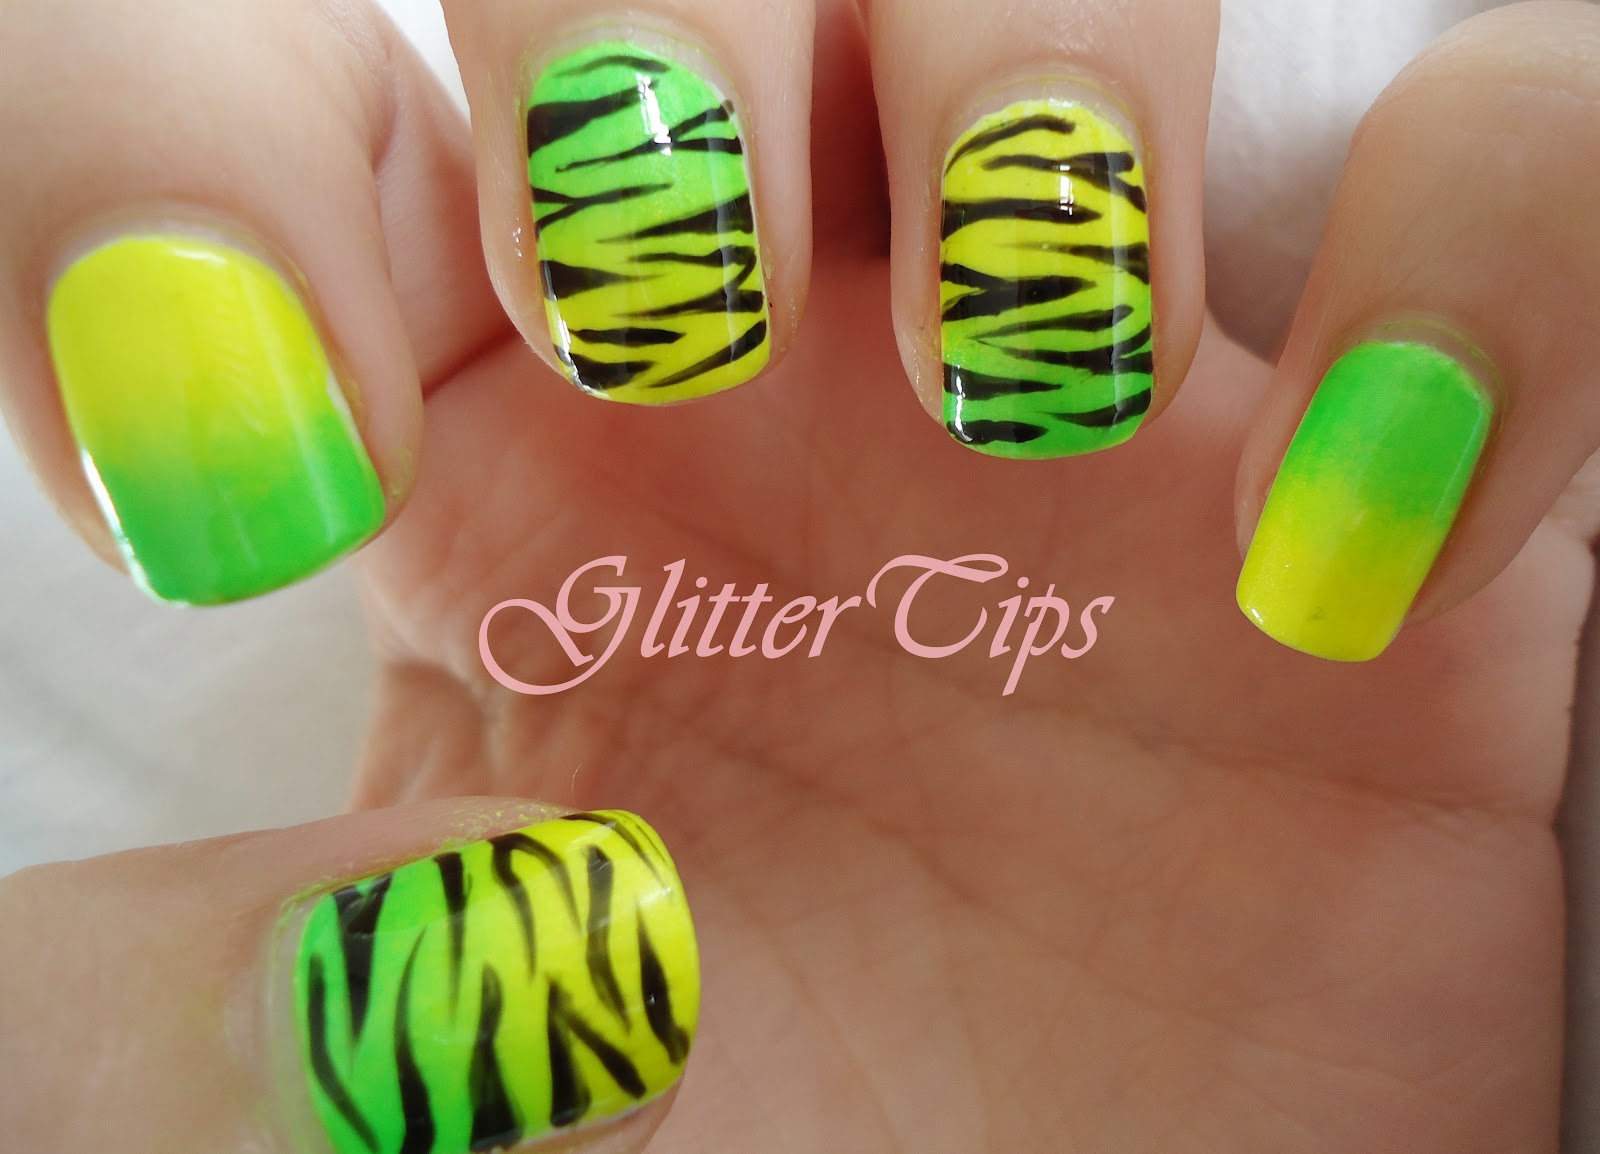 Glitter Tips: Makeup Savvy 15 Day Nail Challenge - Day 1 - Bright